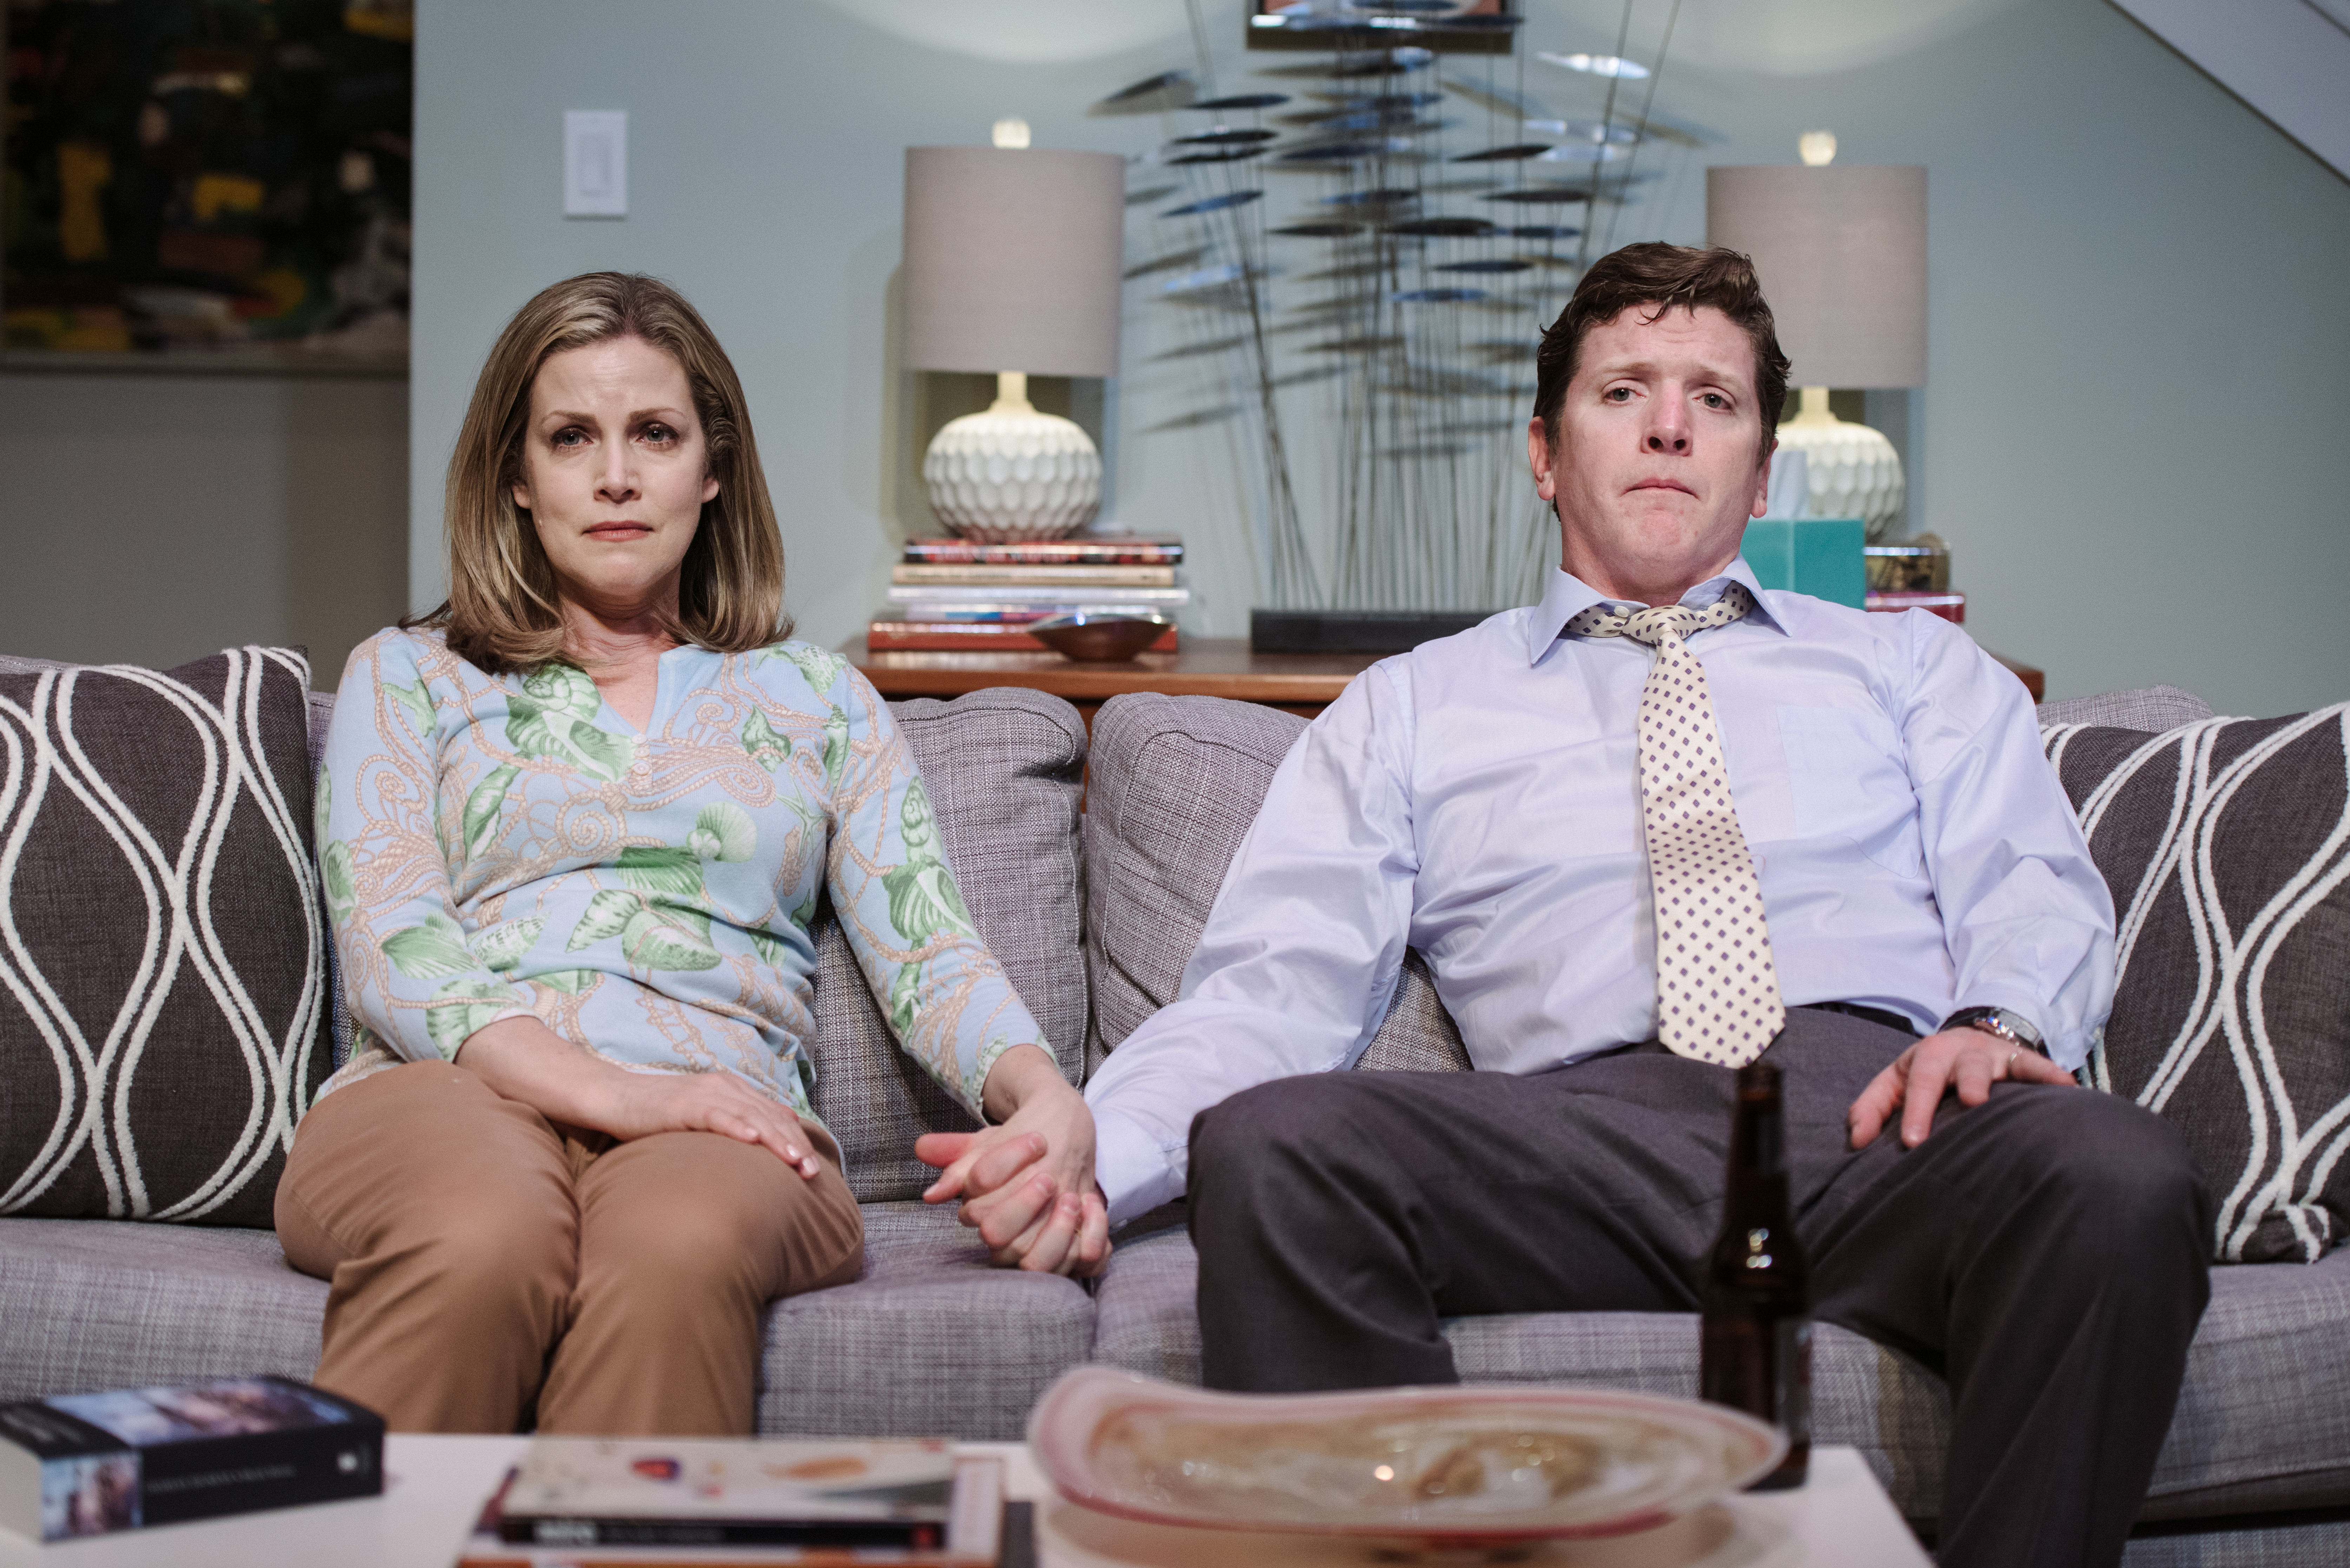 BWW Review: Cadence Theatre's RABBIT HOLE Examines Life After Tragedy